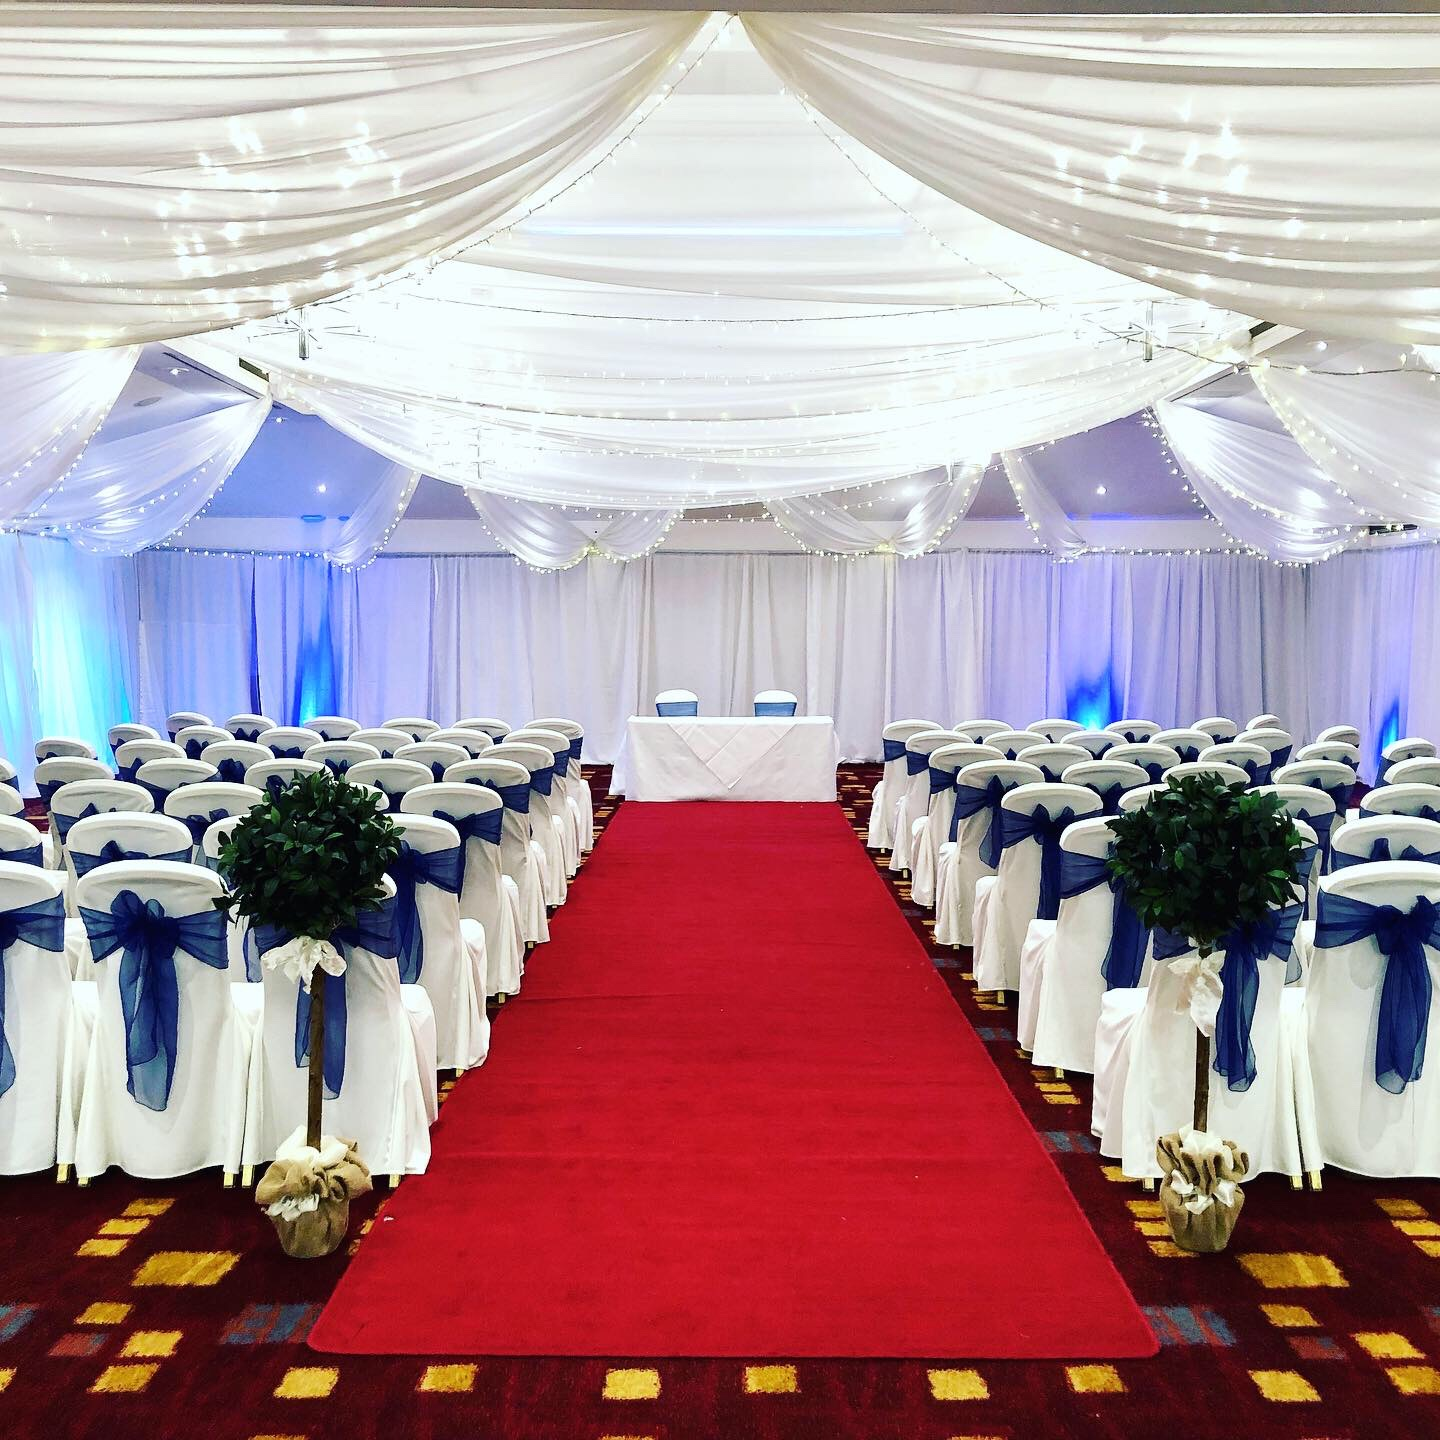 The Grand Hall ceremony